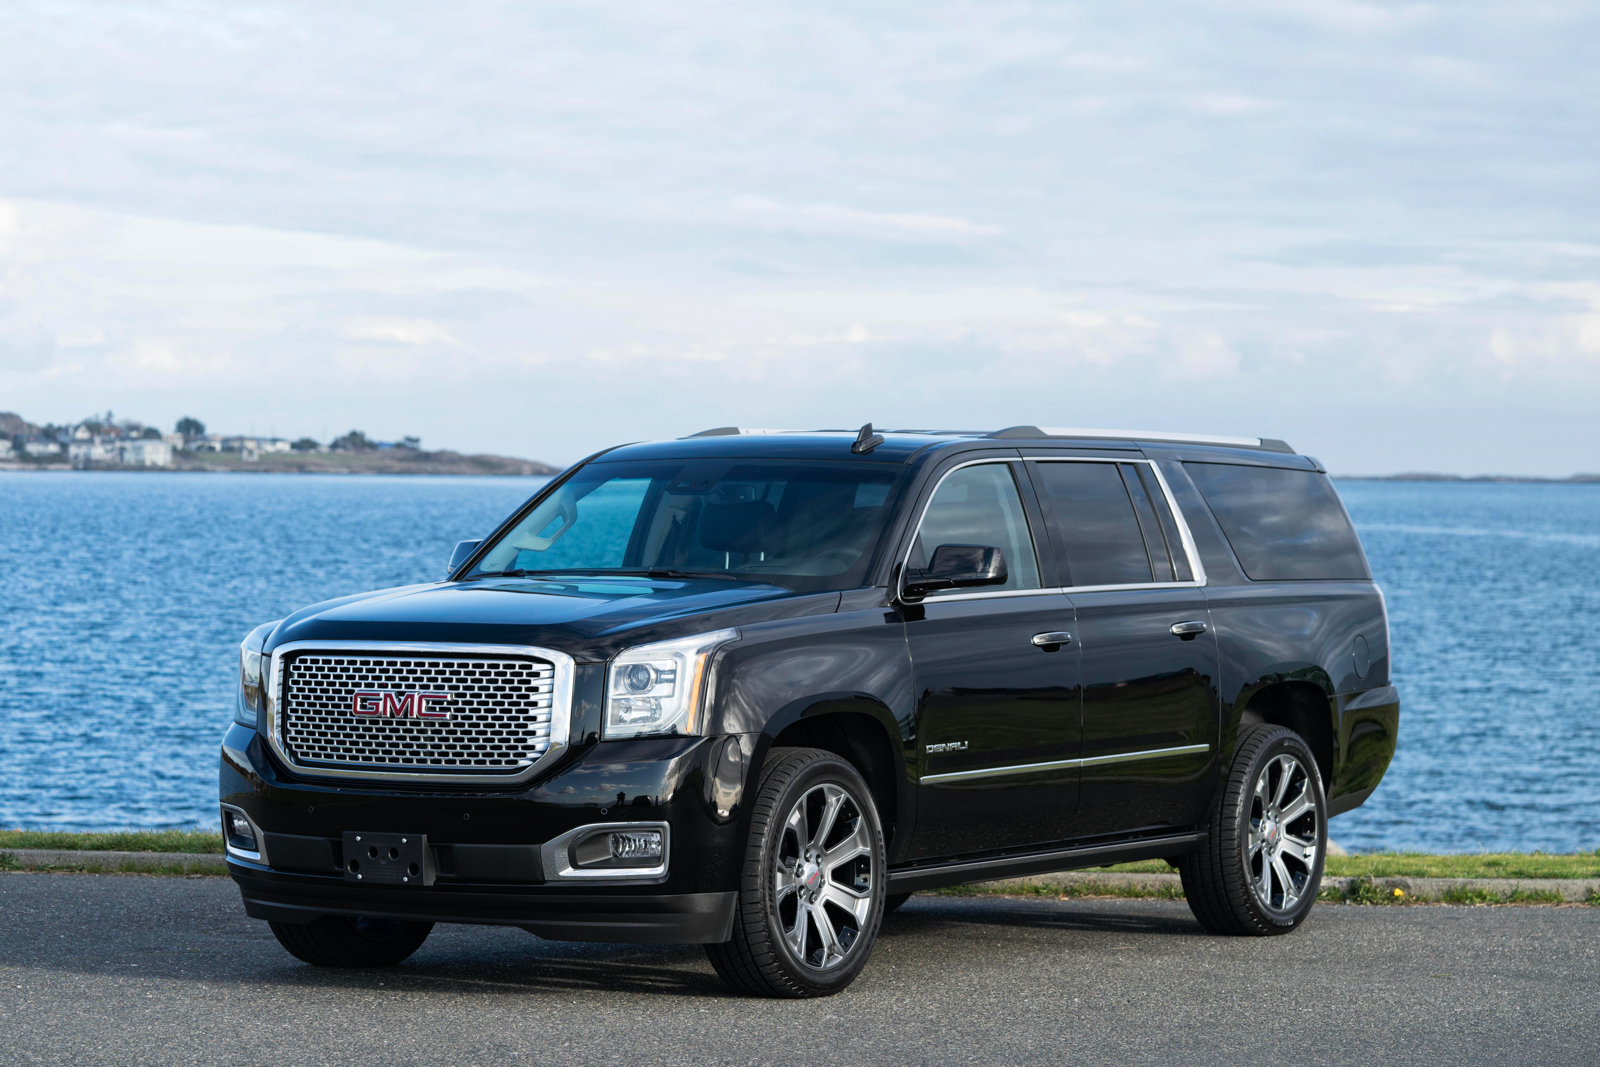 2017 Gmc Yukon Denali Xl For